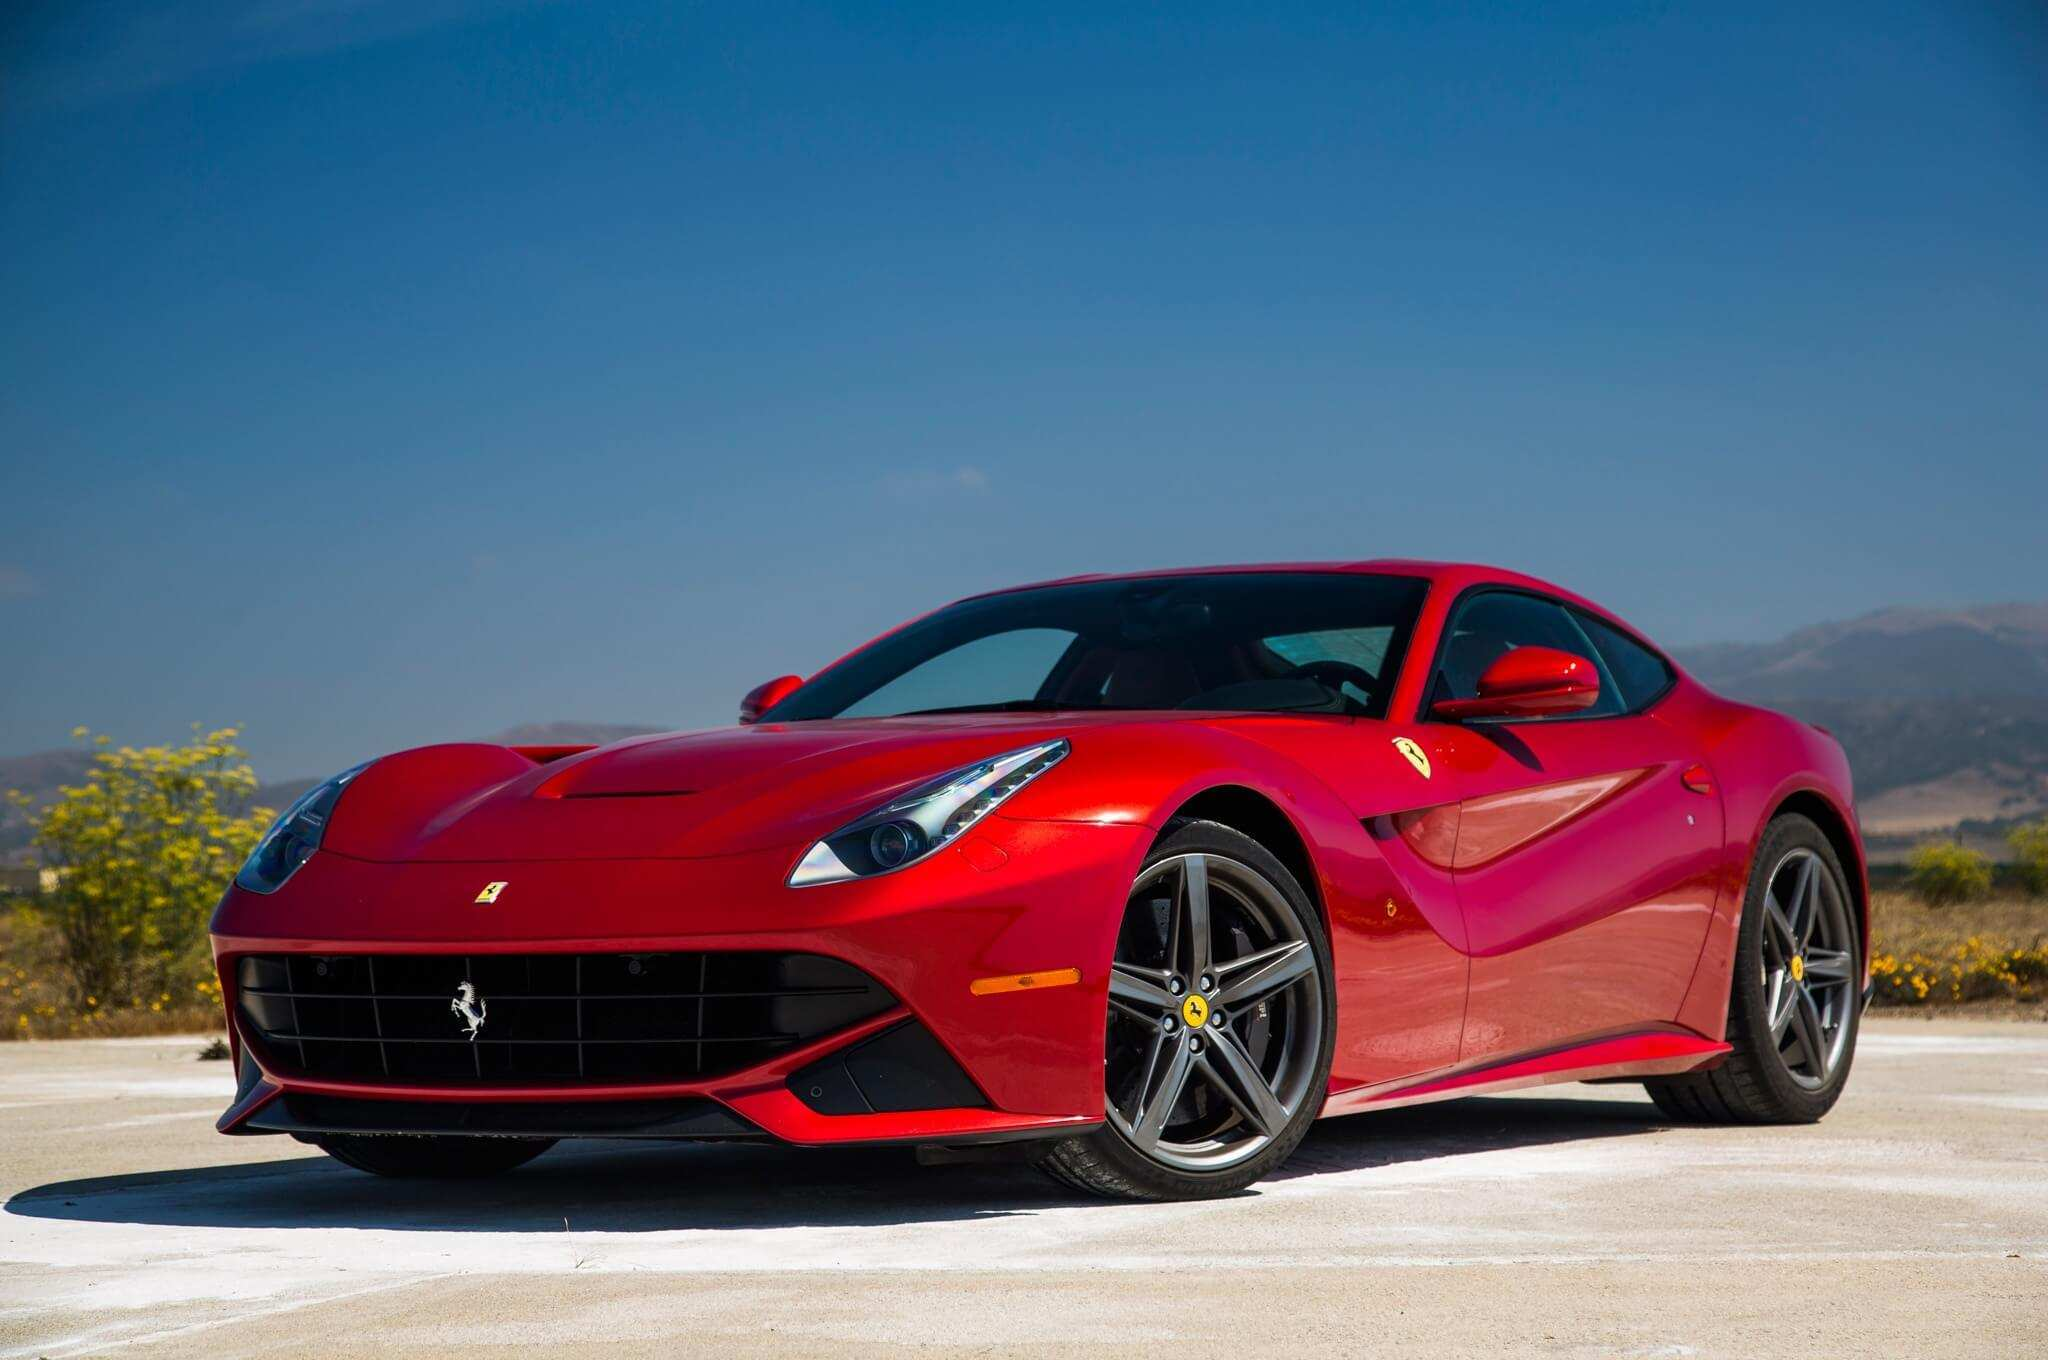 17 Great 2019 Ferrari F12 Berlinetta Price and Review by 2019 Ferrari F12 Berlinetta